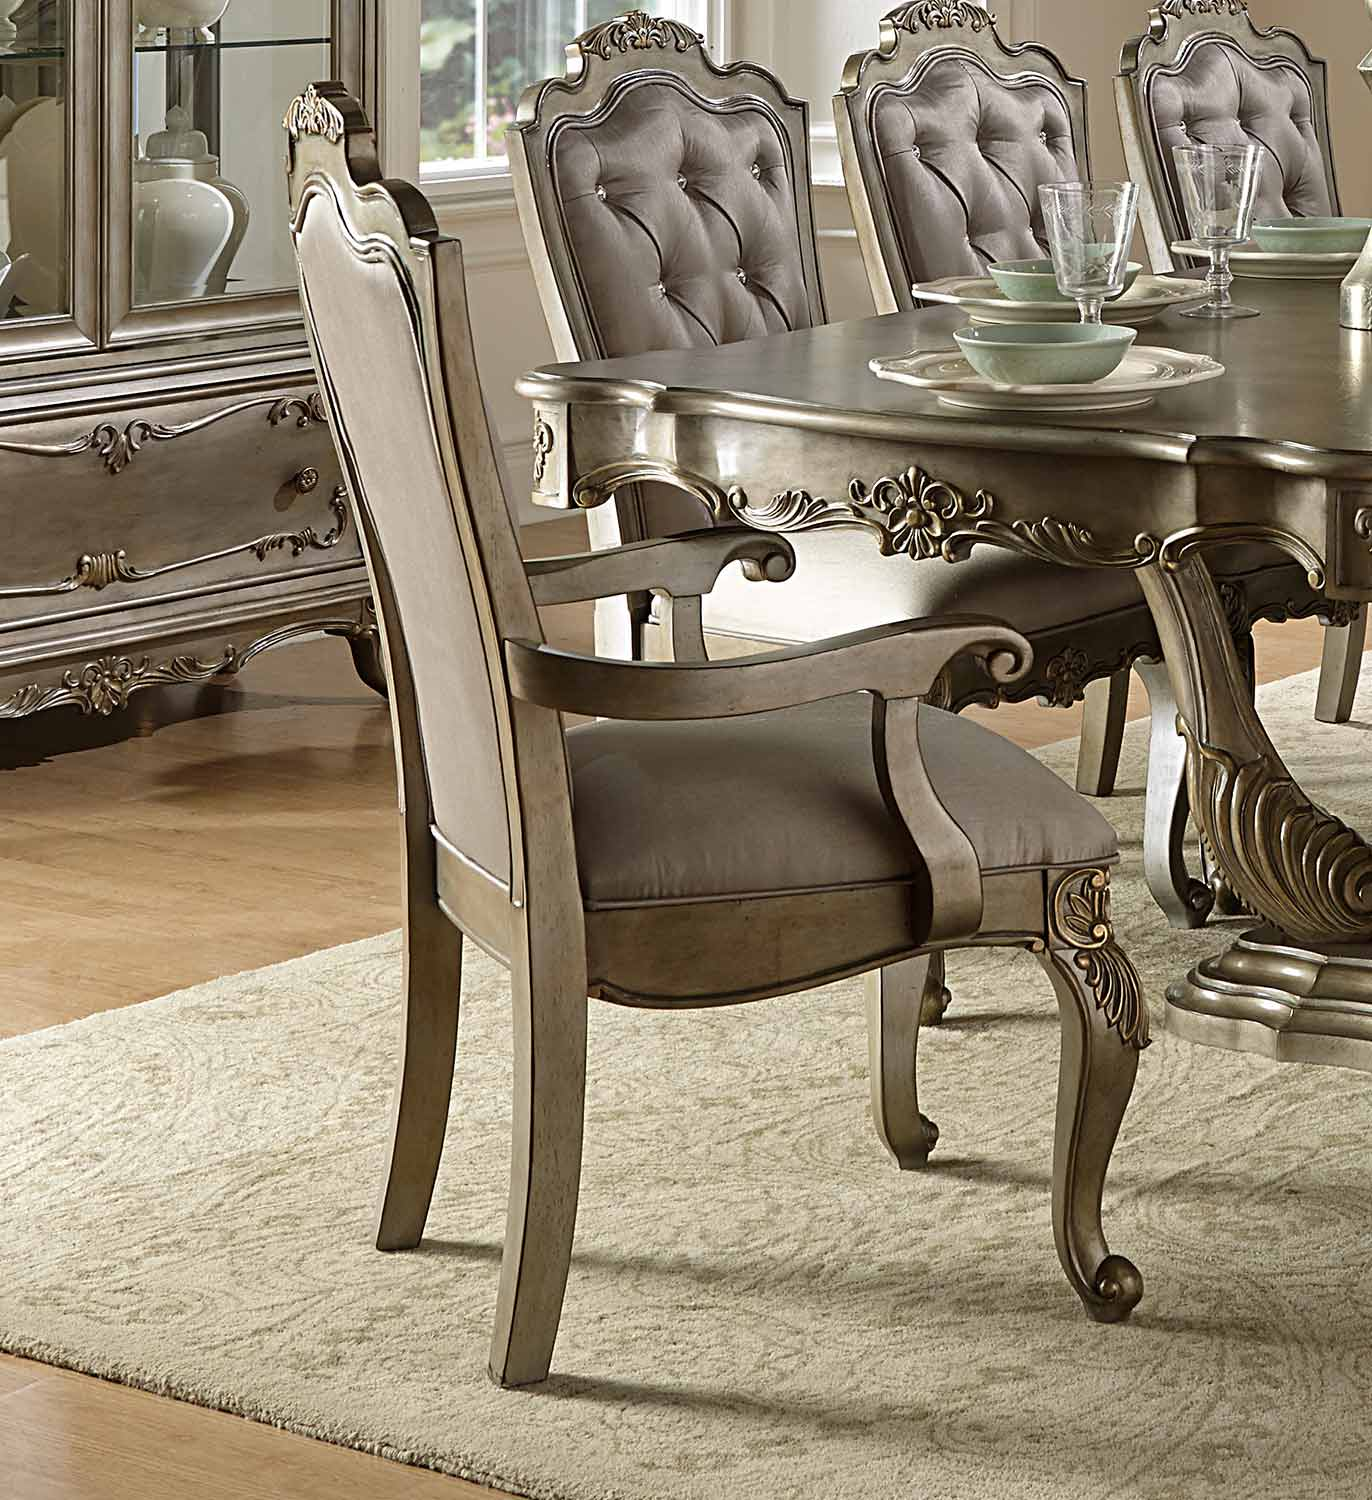 Homelegance Florentina Arm Chair - Silver/Gold